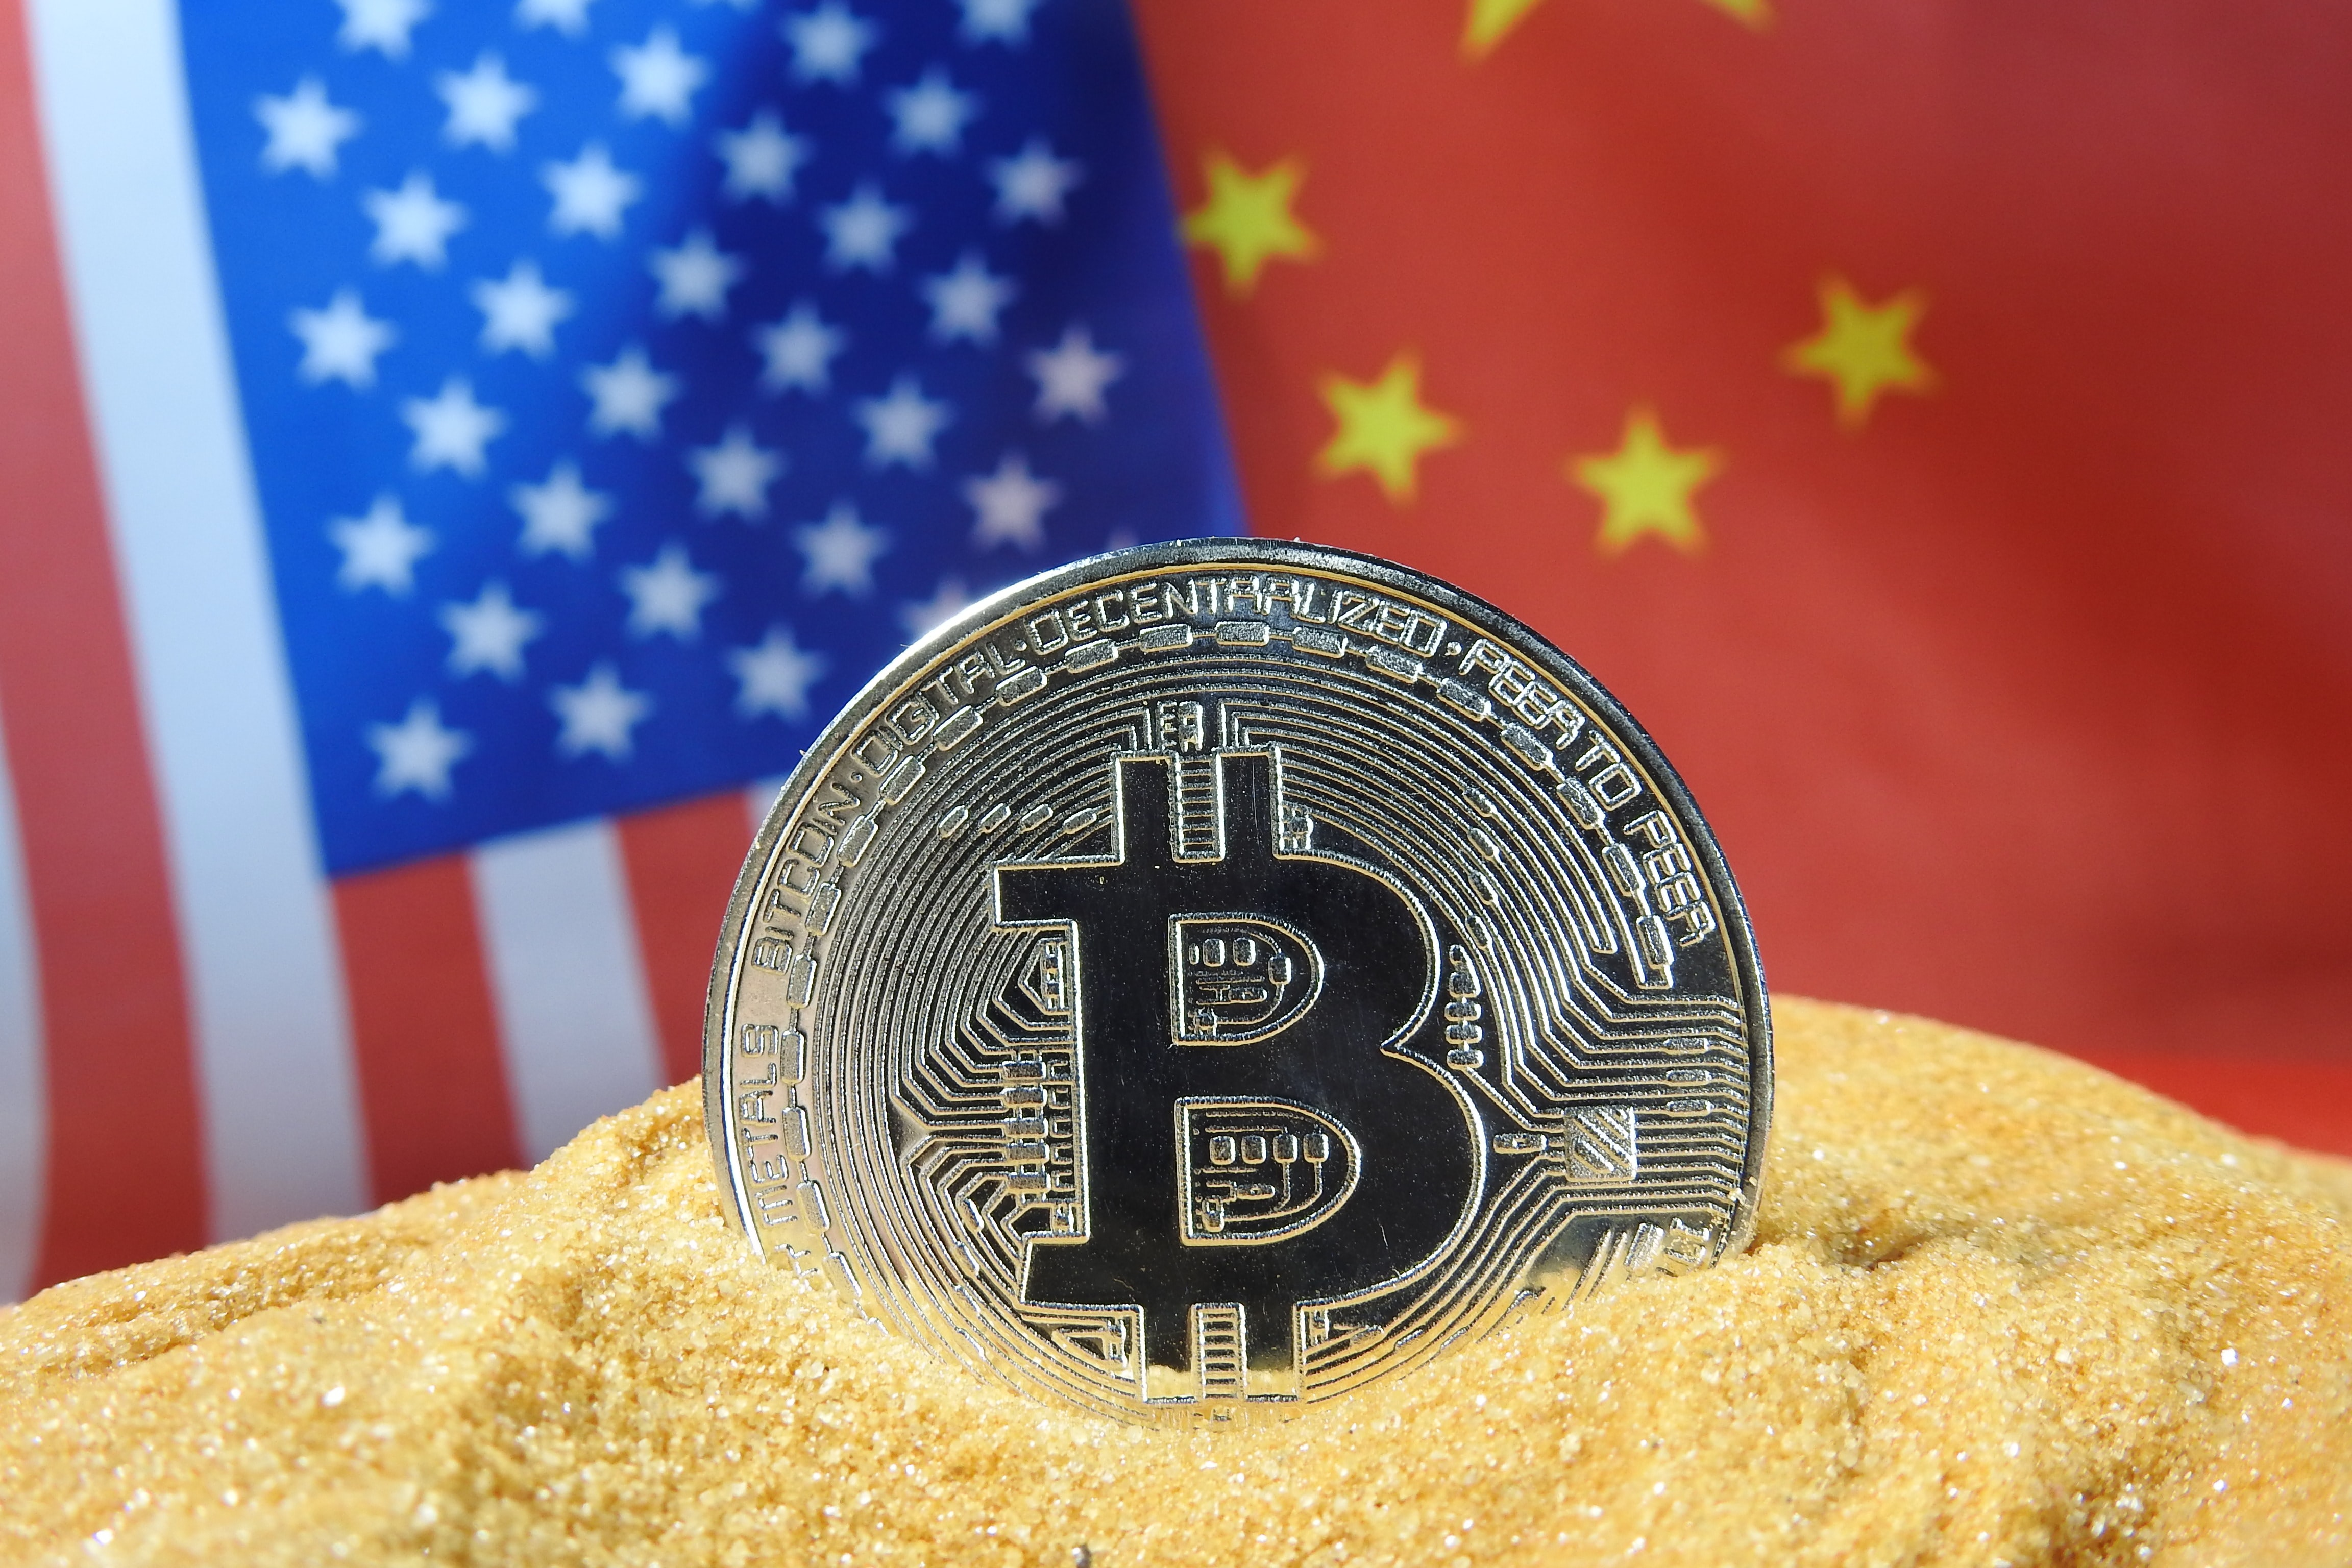 China's Sichuan Asks Bitcoin Miners To Shutdown Operations